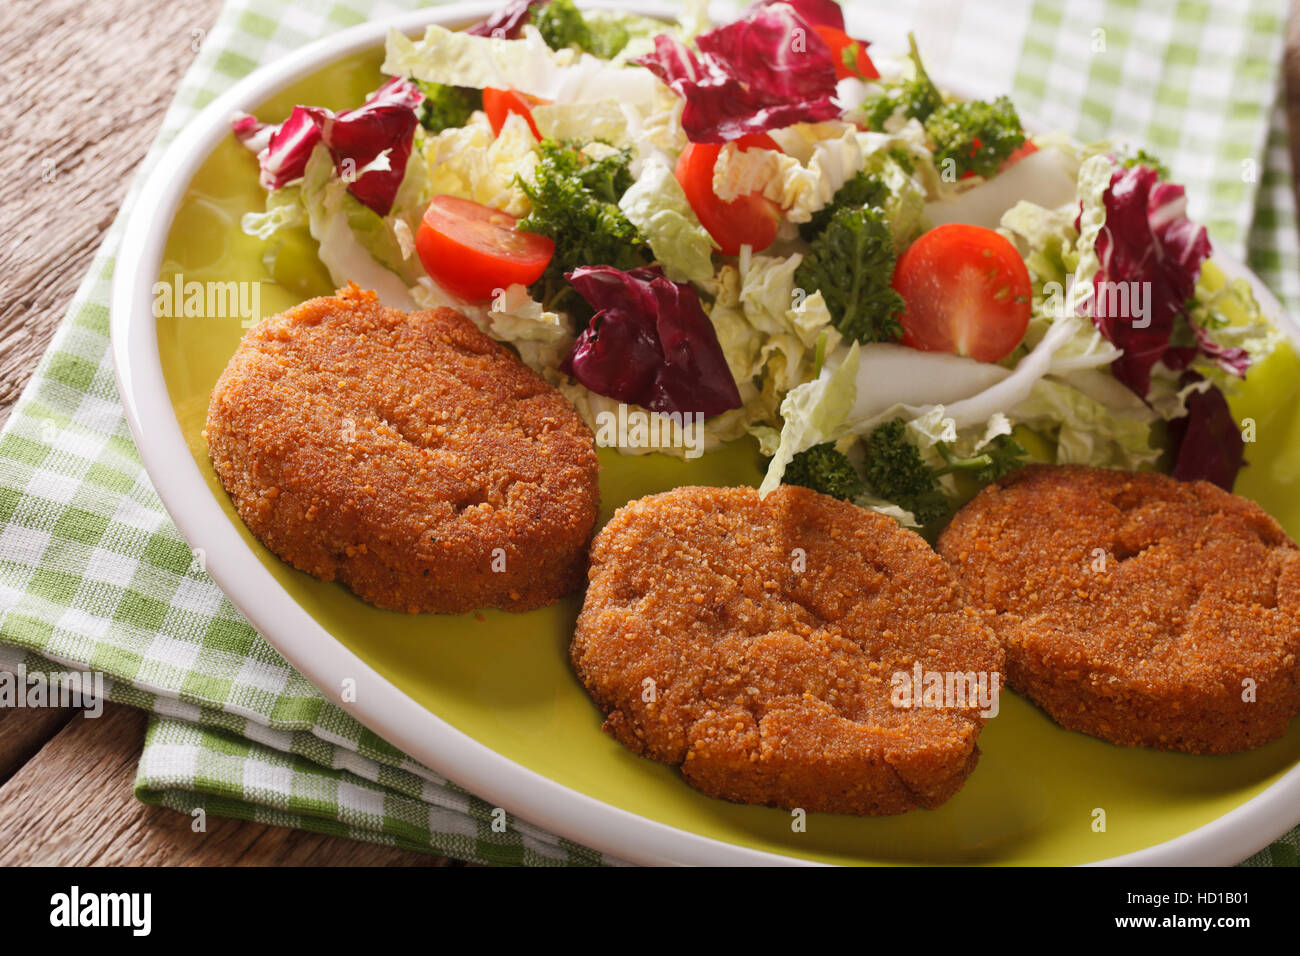 Dietary carrot burgers and fresh salad mix close-up on a plate. horizontal - Stock Image